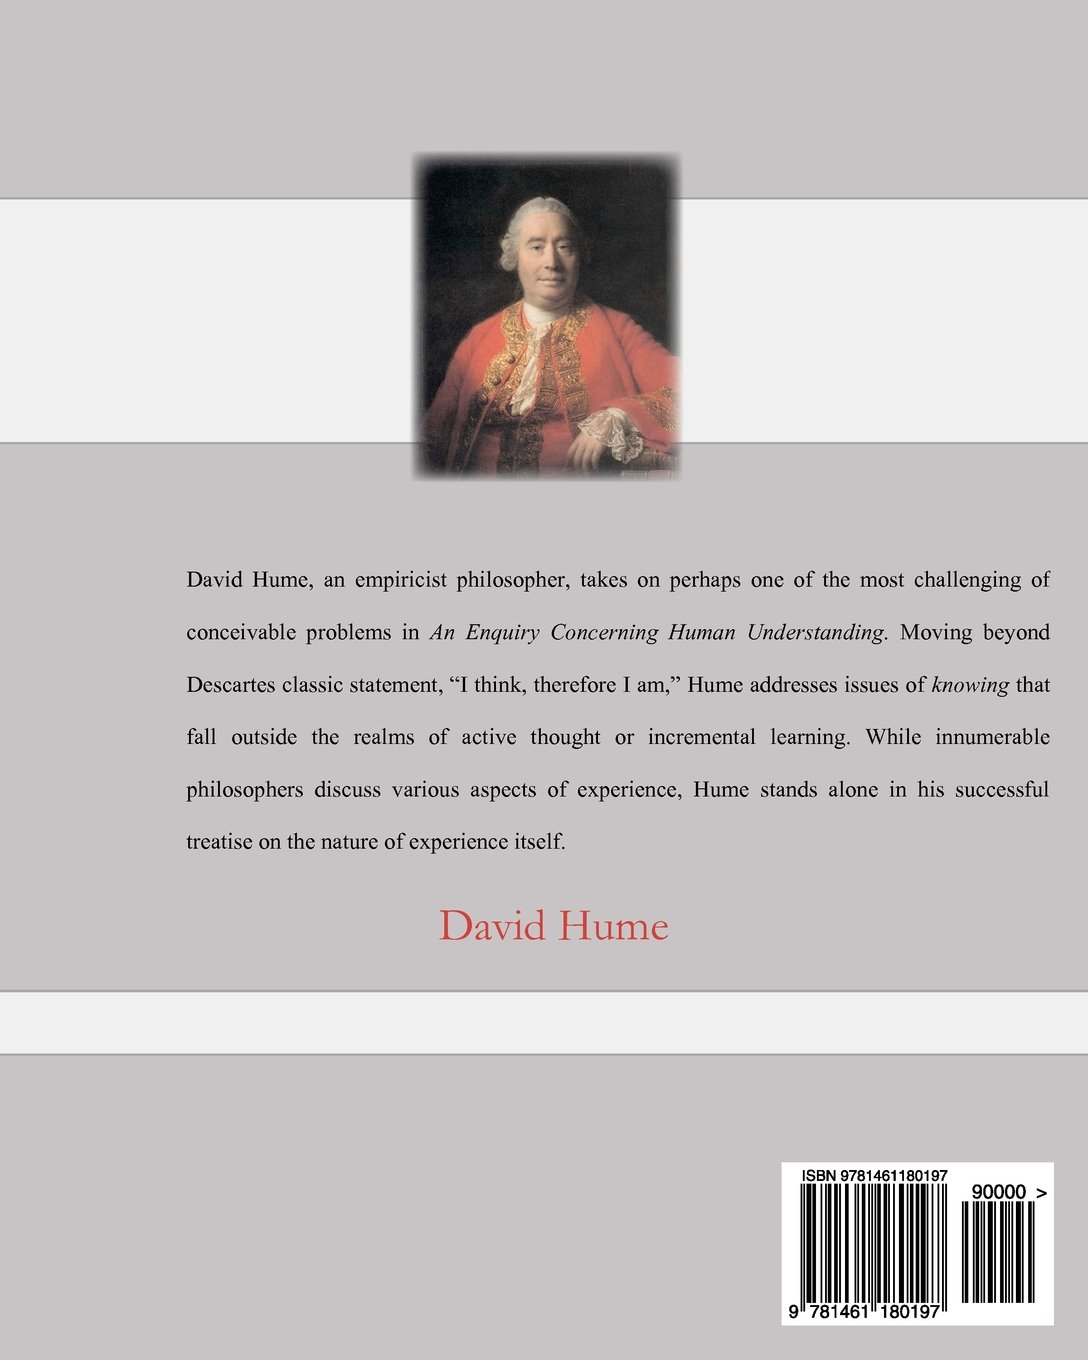 an enquiry concerning human understanding amazon co uk david an enquiry concerning human understanding amazon co uk david hume 9781461180197 books